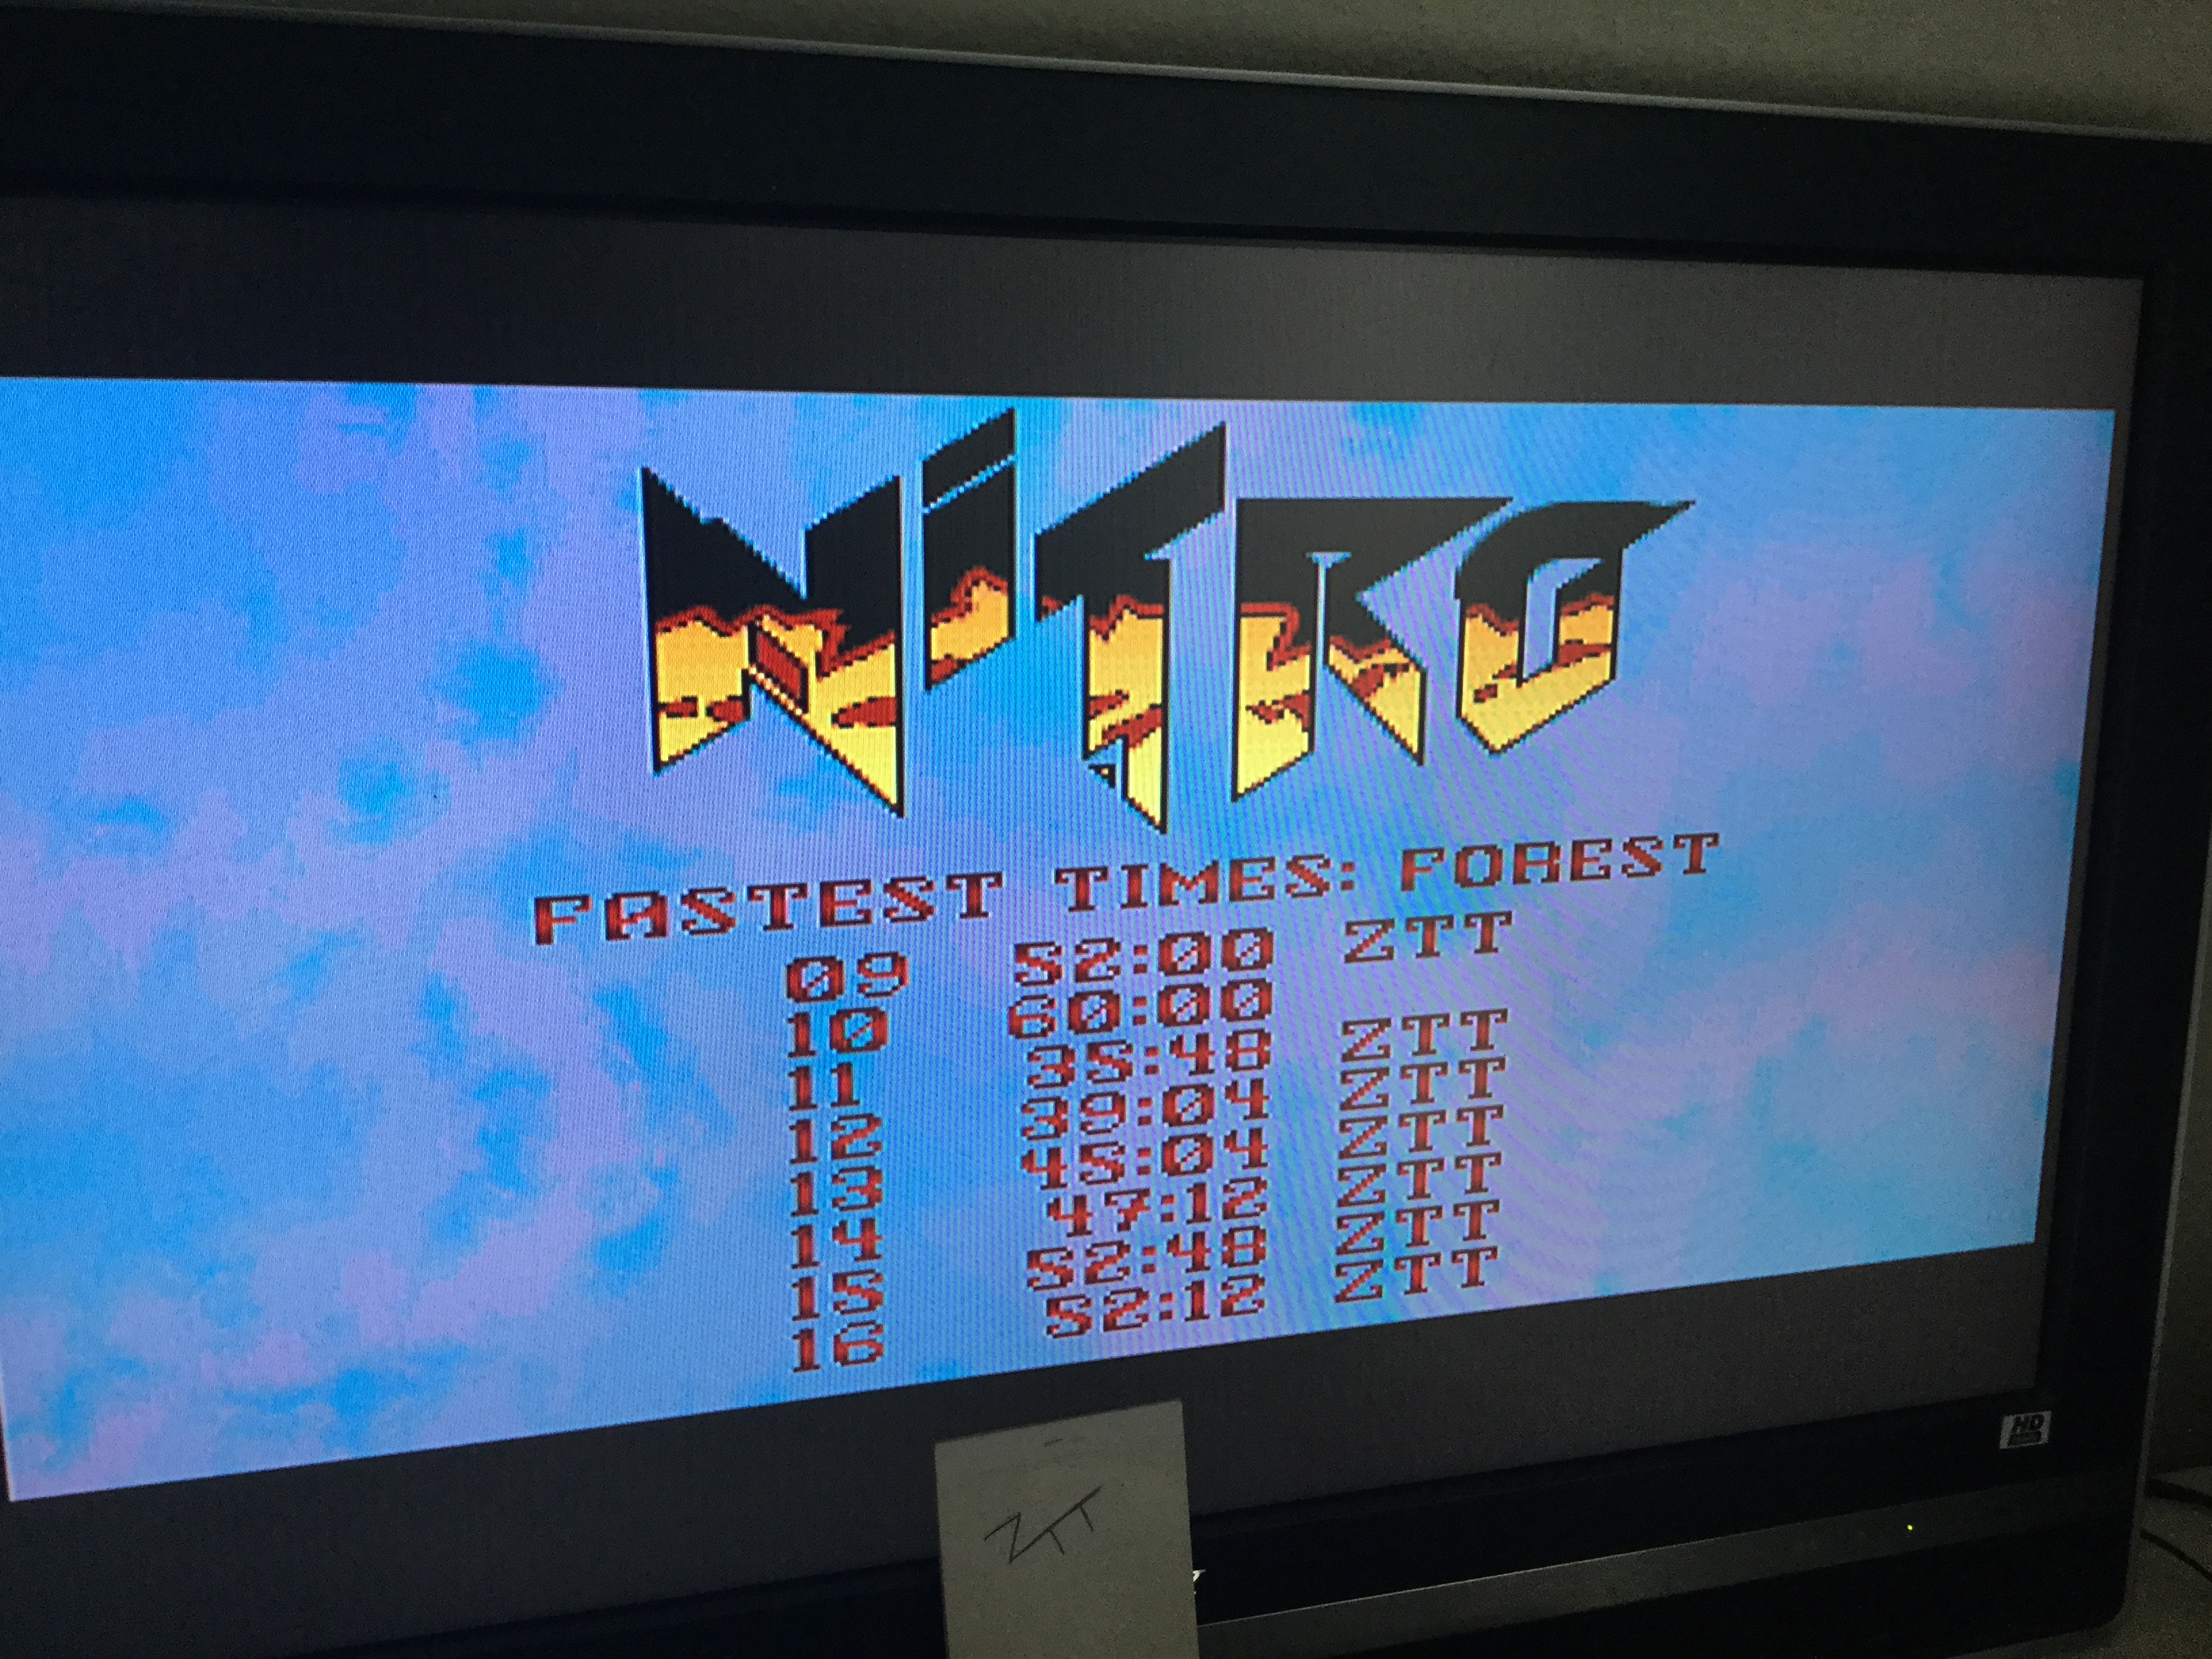 Frankie: Nitro [Track 9] (Amiga) 0:00:52 points on 2019-02-11 00:09:34